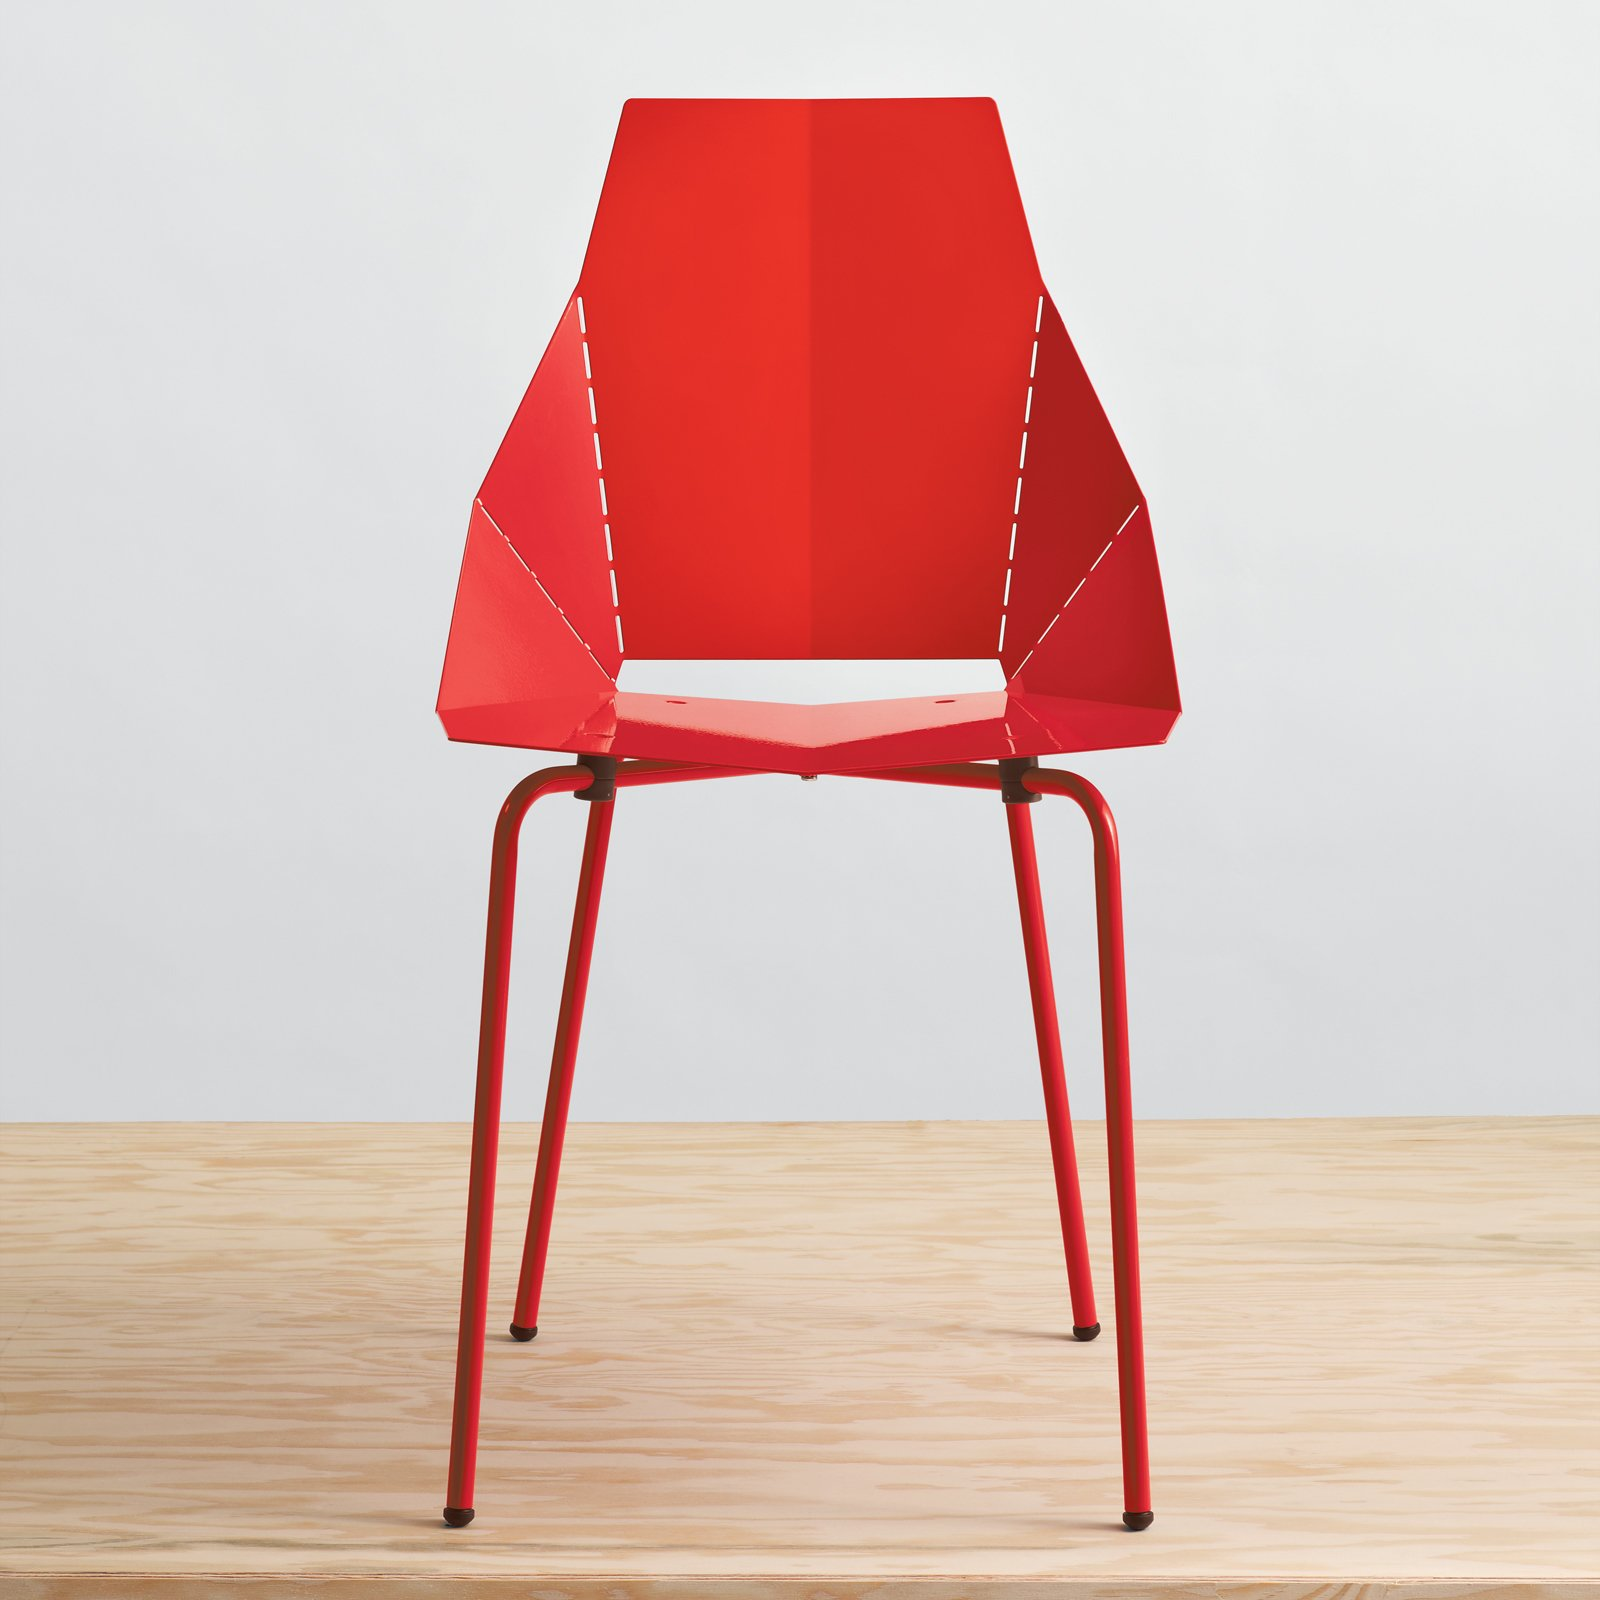 #seatingdesign #red #modern #chair #RealGoodChair #bright #BluDot #sculptural   100+ Best Modern Seating Designs by Dwell